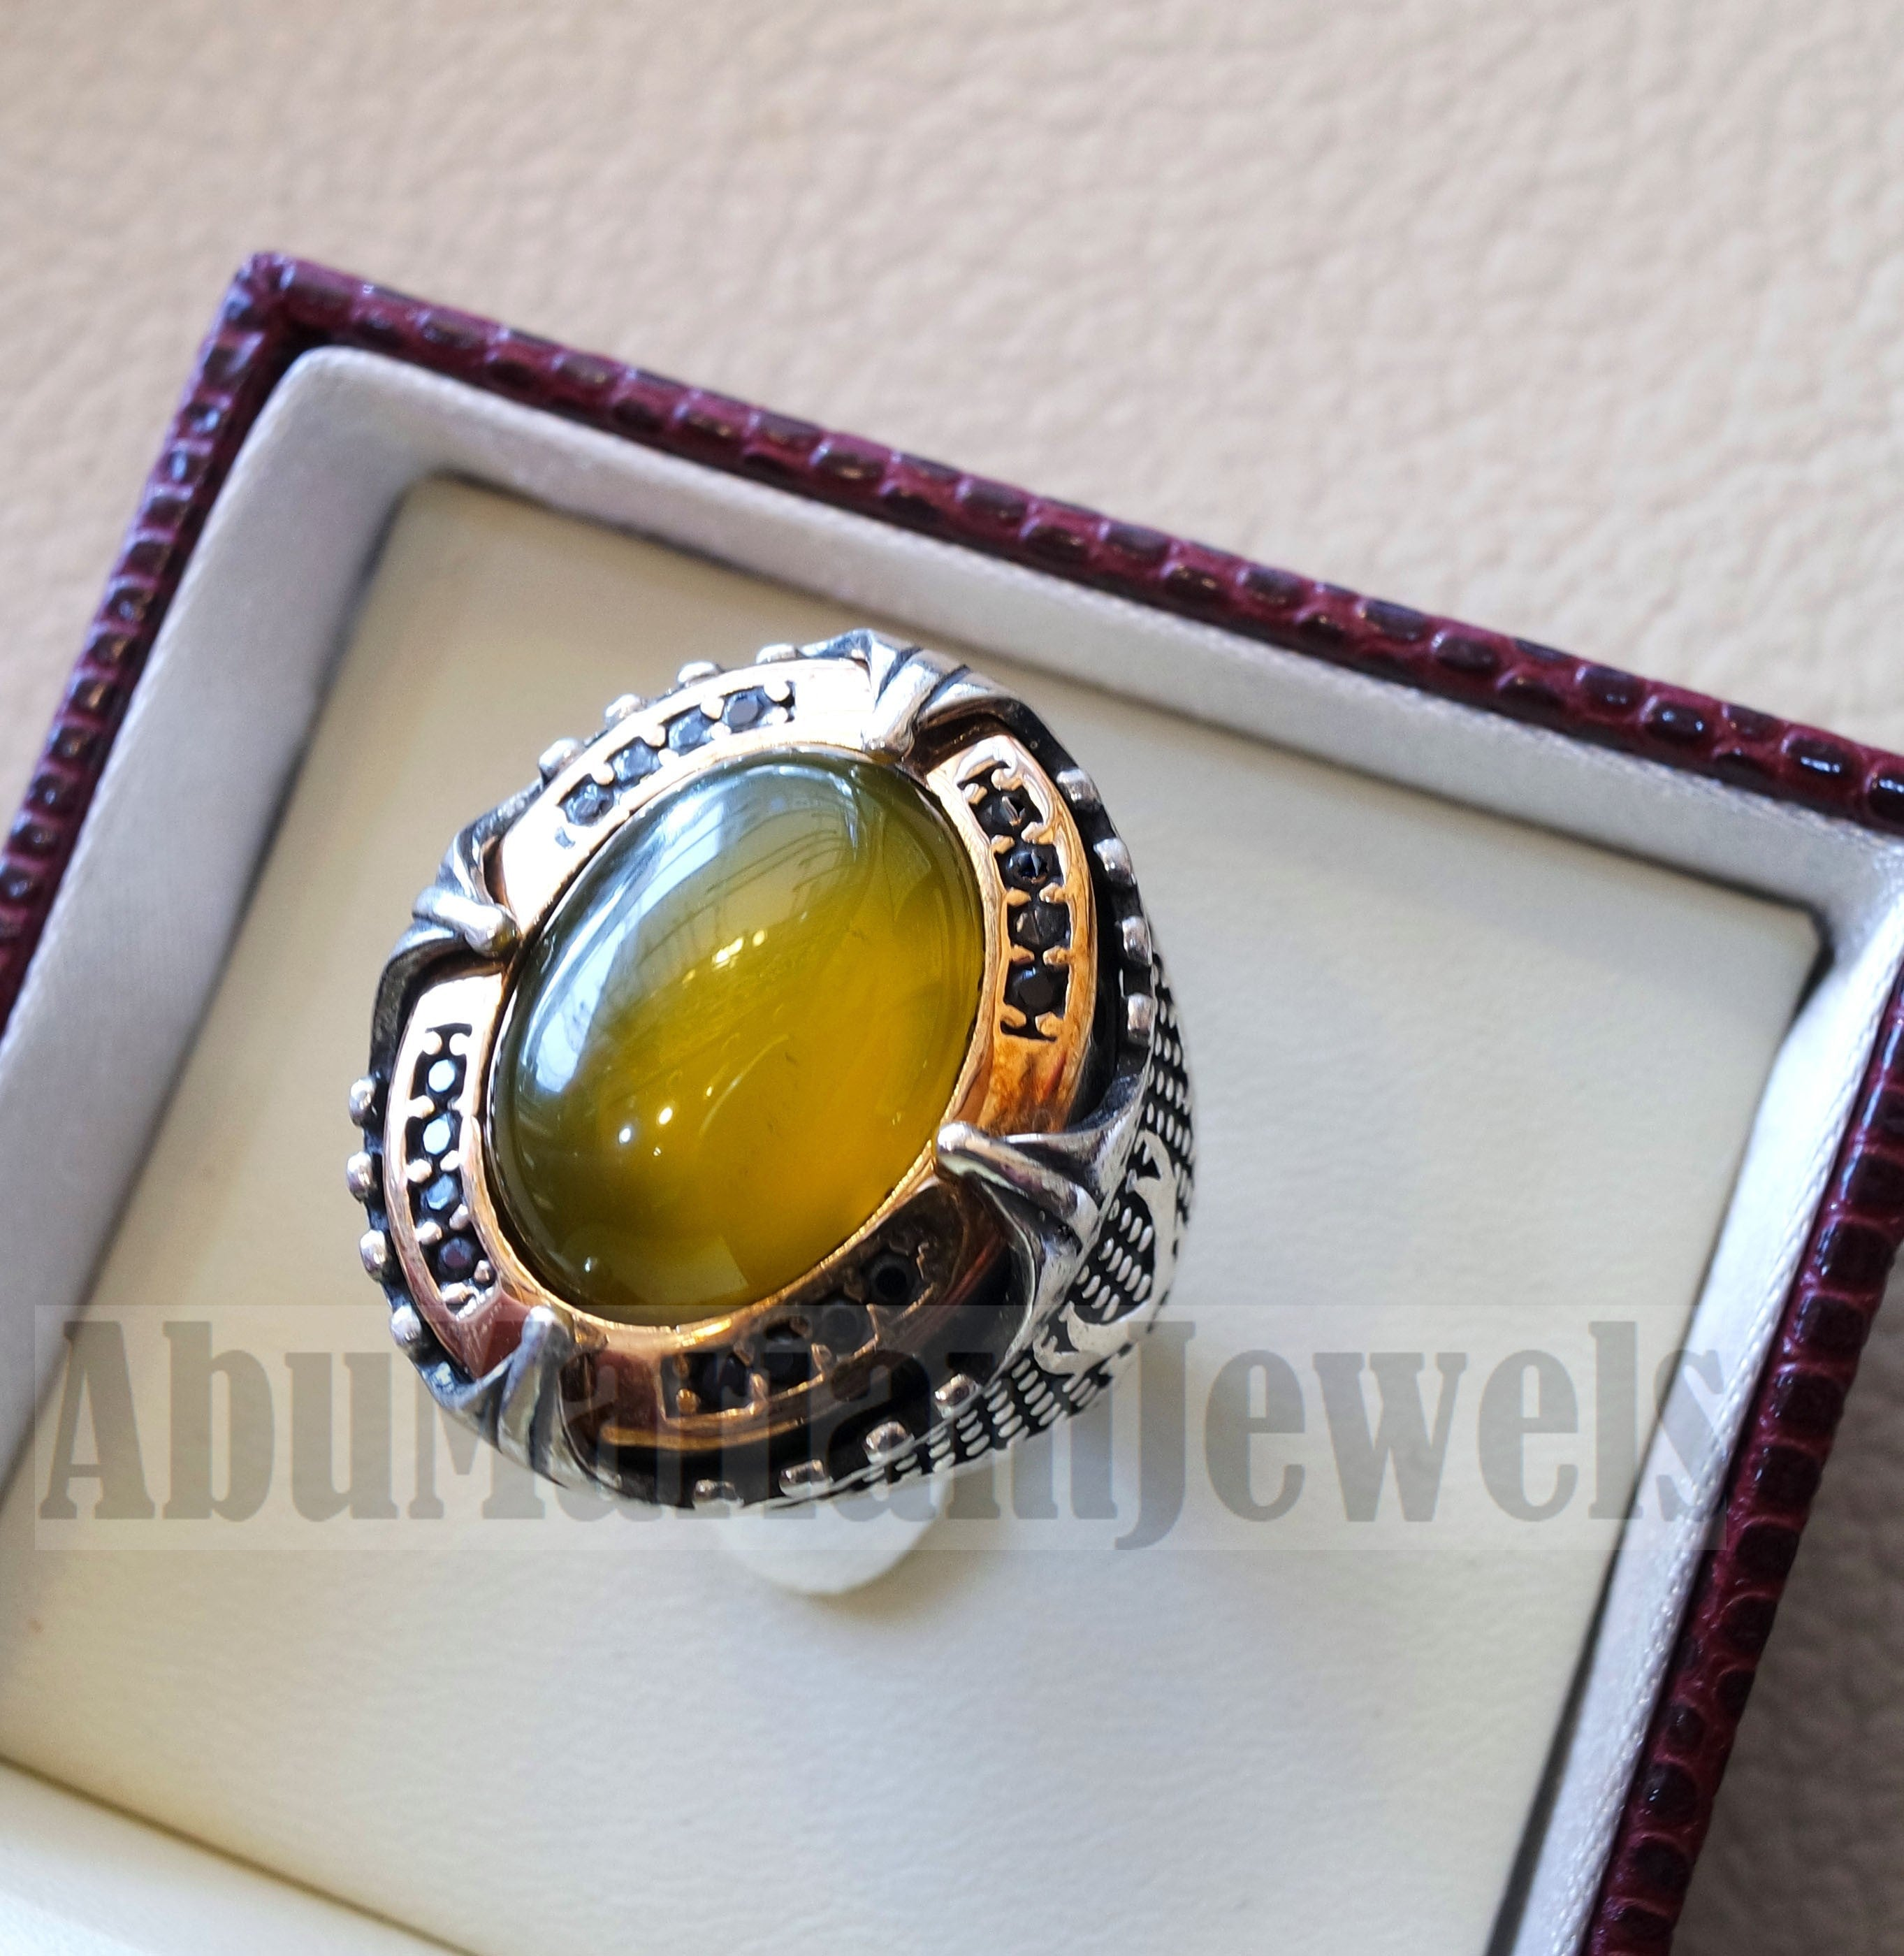 Two swords men ring sterling silver 925 Yellow onyx agate natural stone bronze frame and black cubic zirconia stones all sizes heavy jewelry